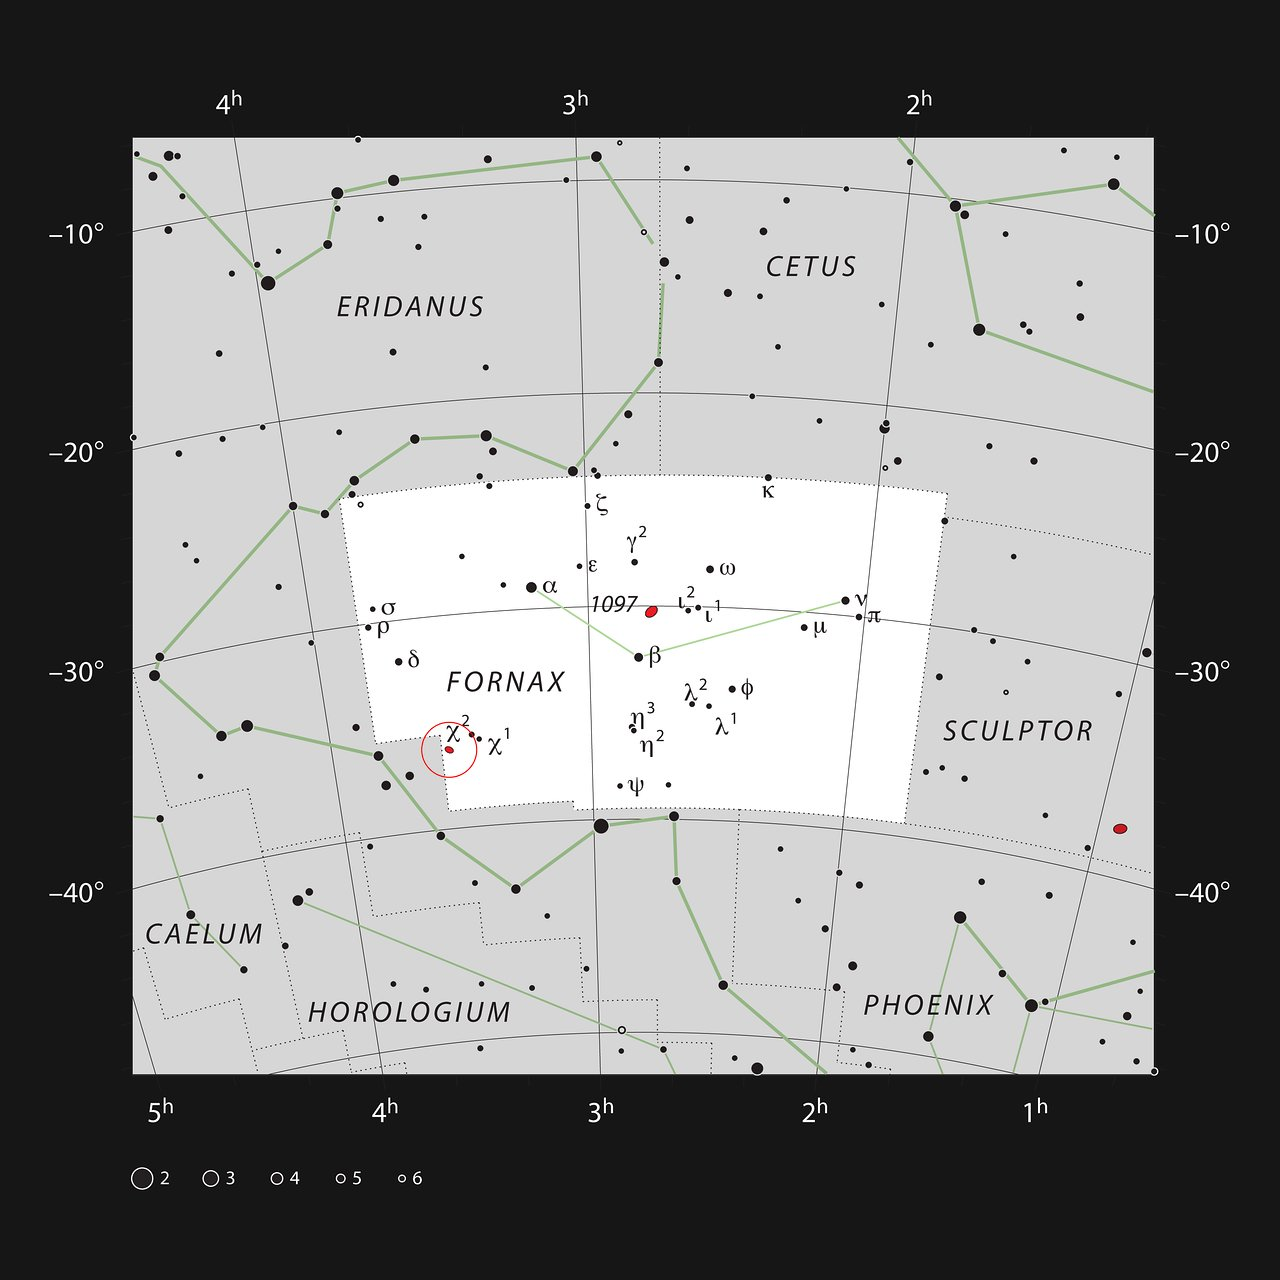 NGC 1365 in the constellation of Fornax